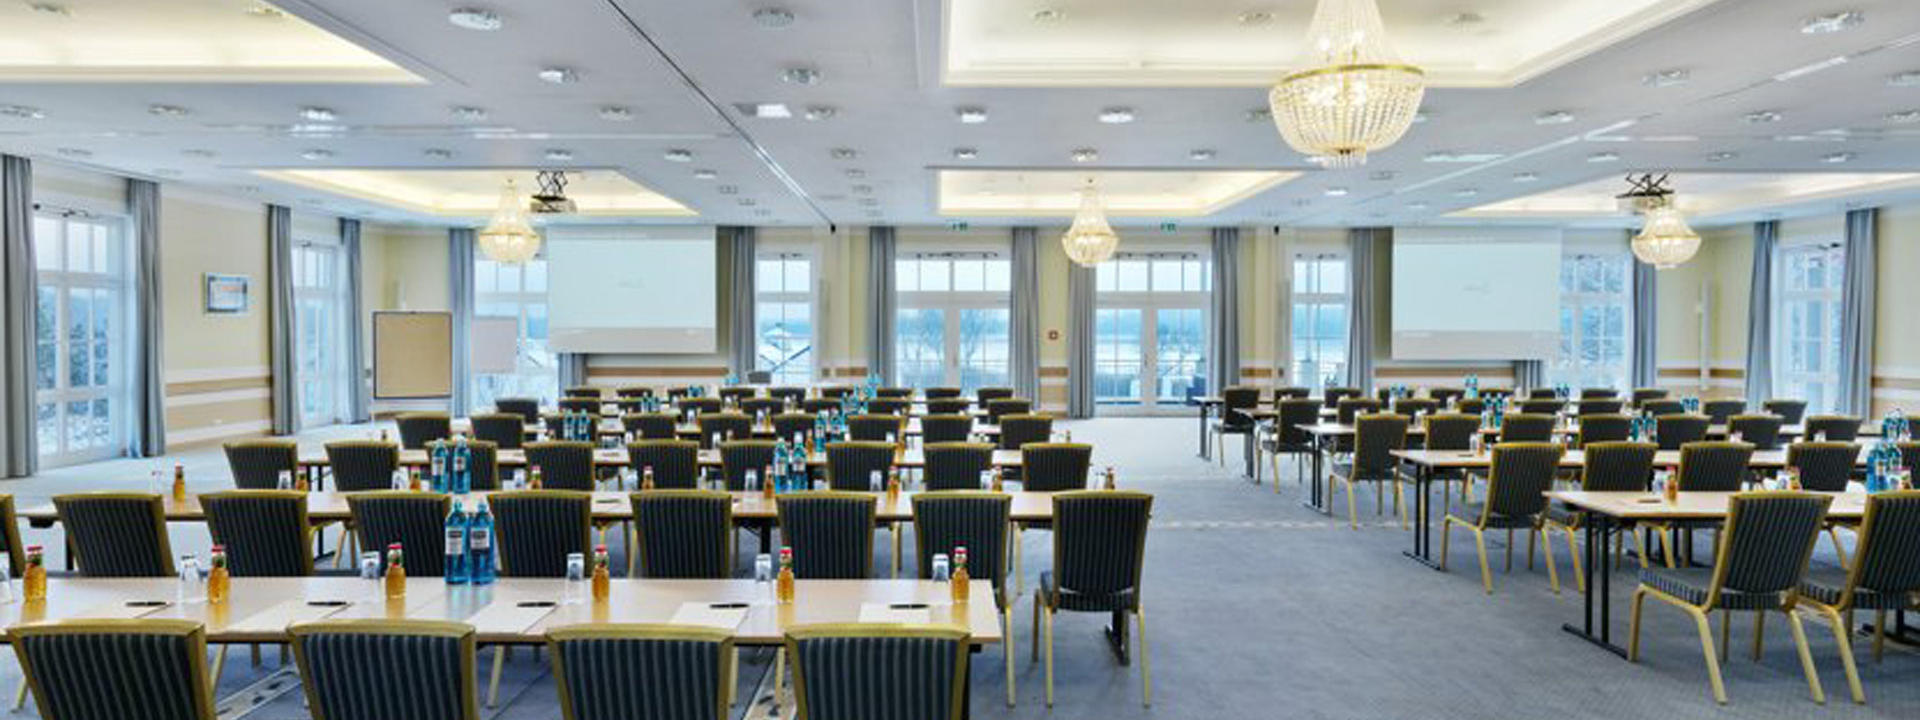 meeting room at Event Center Schwielowsee